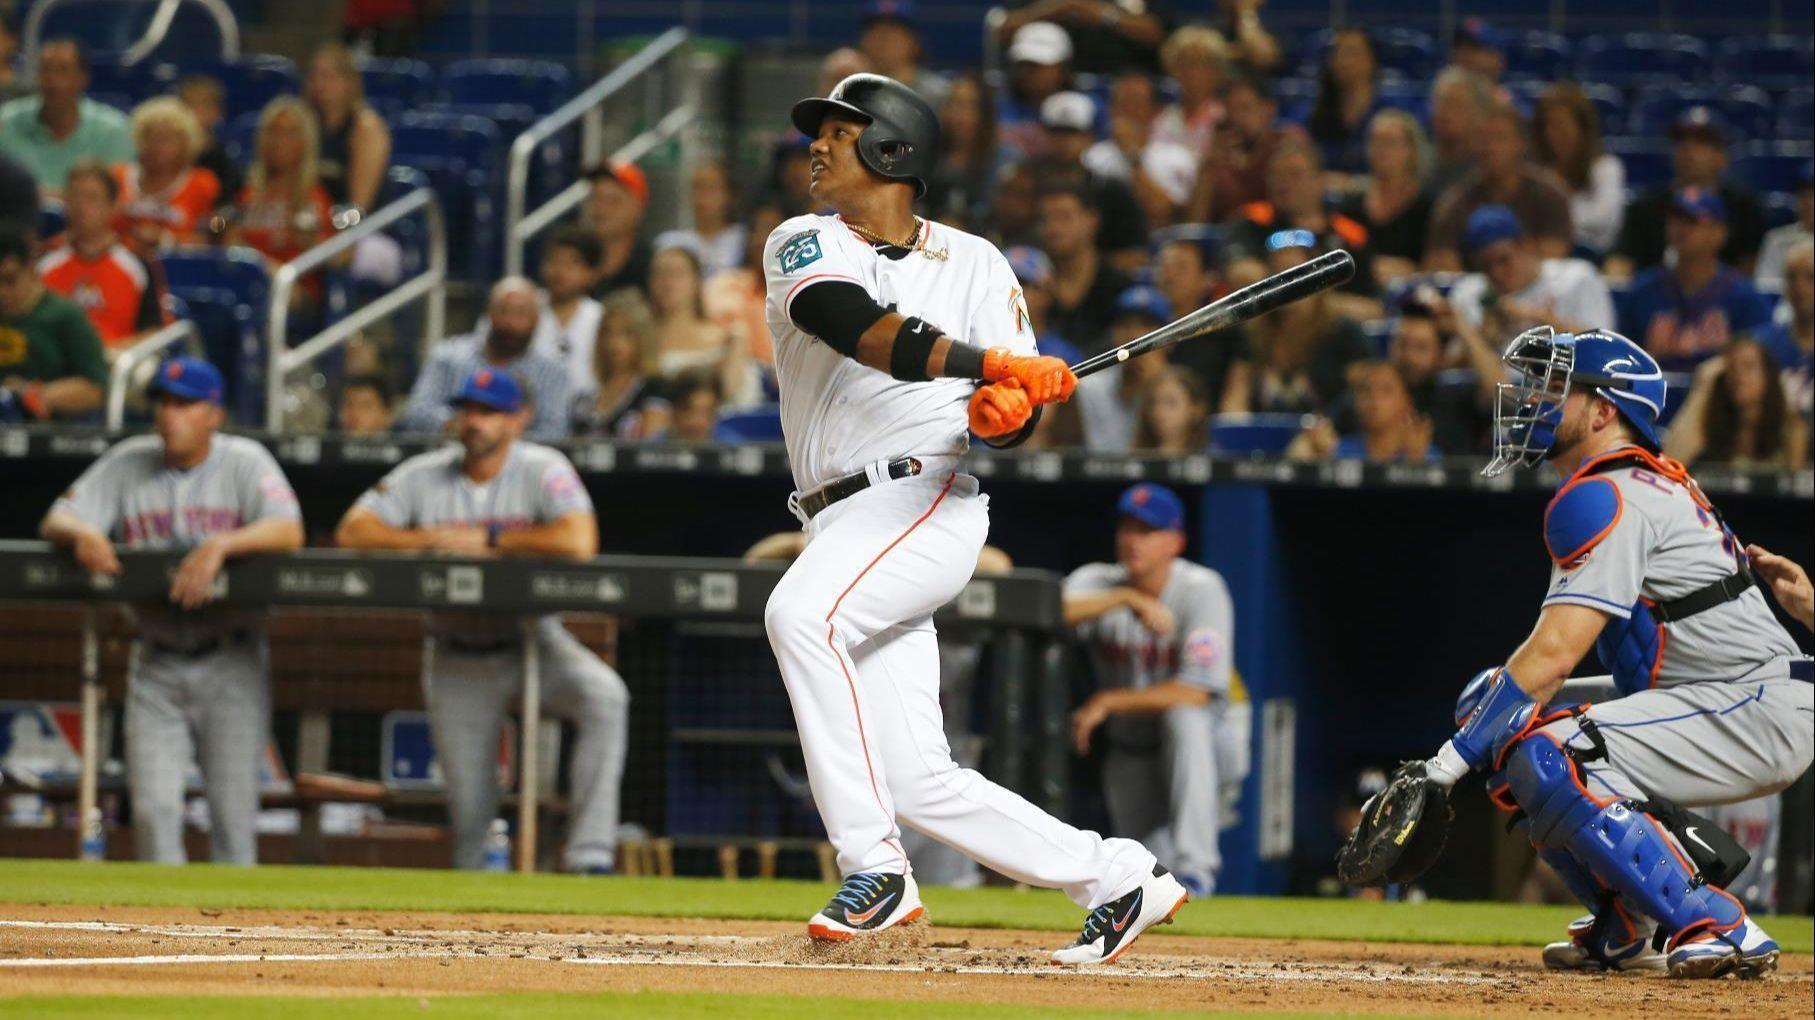 Fl-sp-miami-marlins-mets-tues-20180410